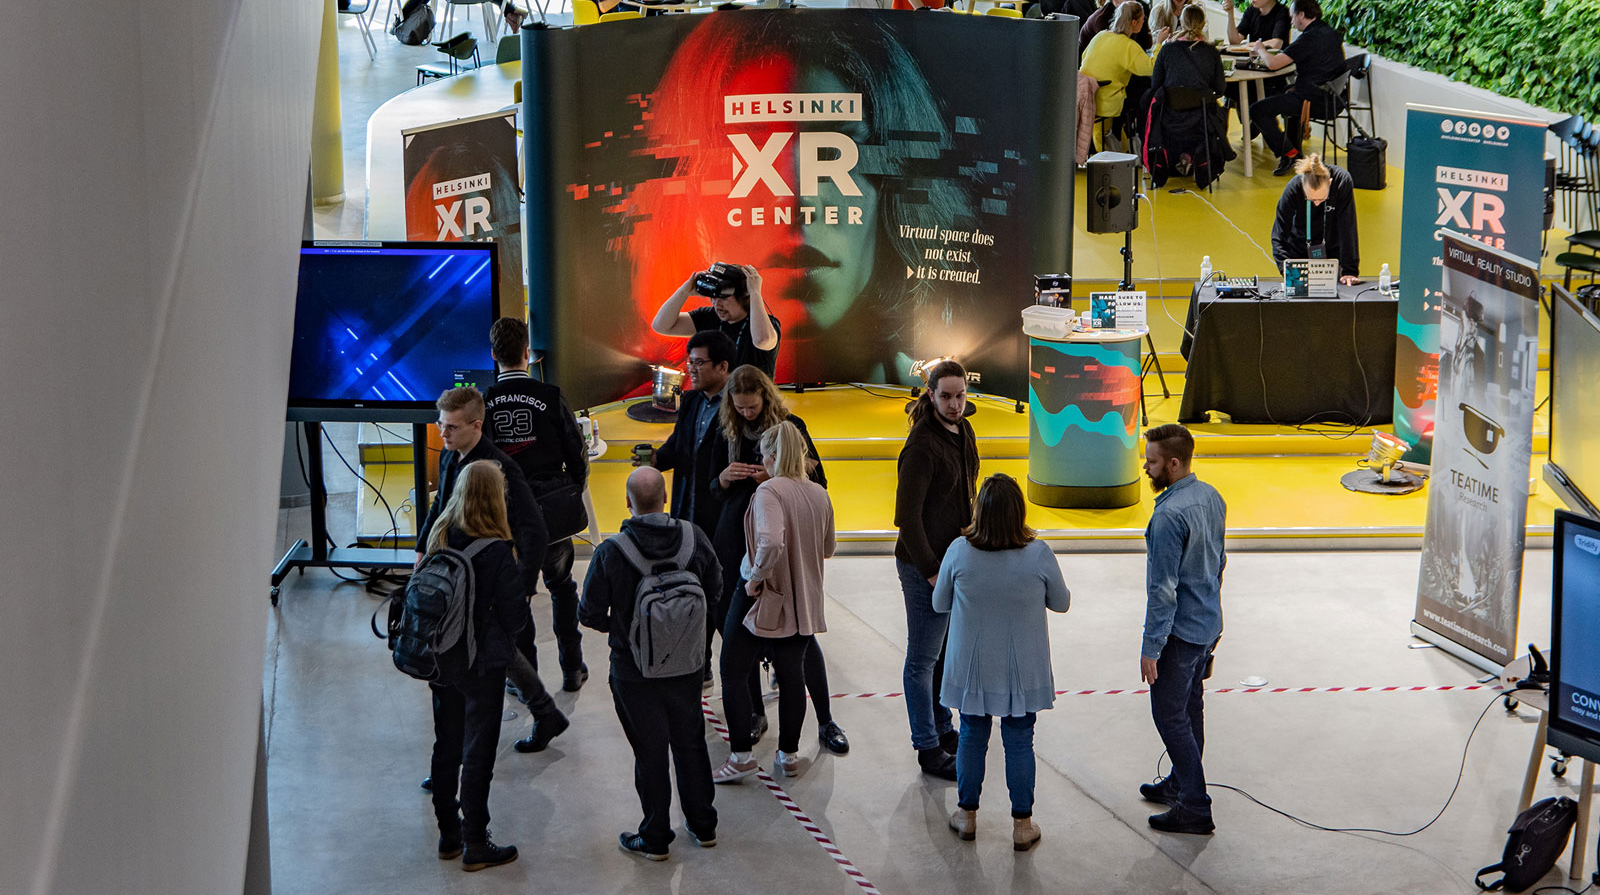 A roadshow VR stand in a large convention area, with people trying out headsets.